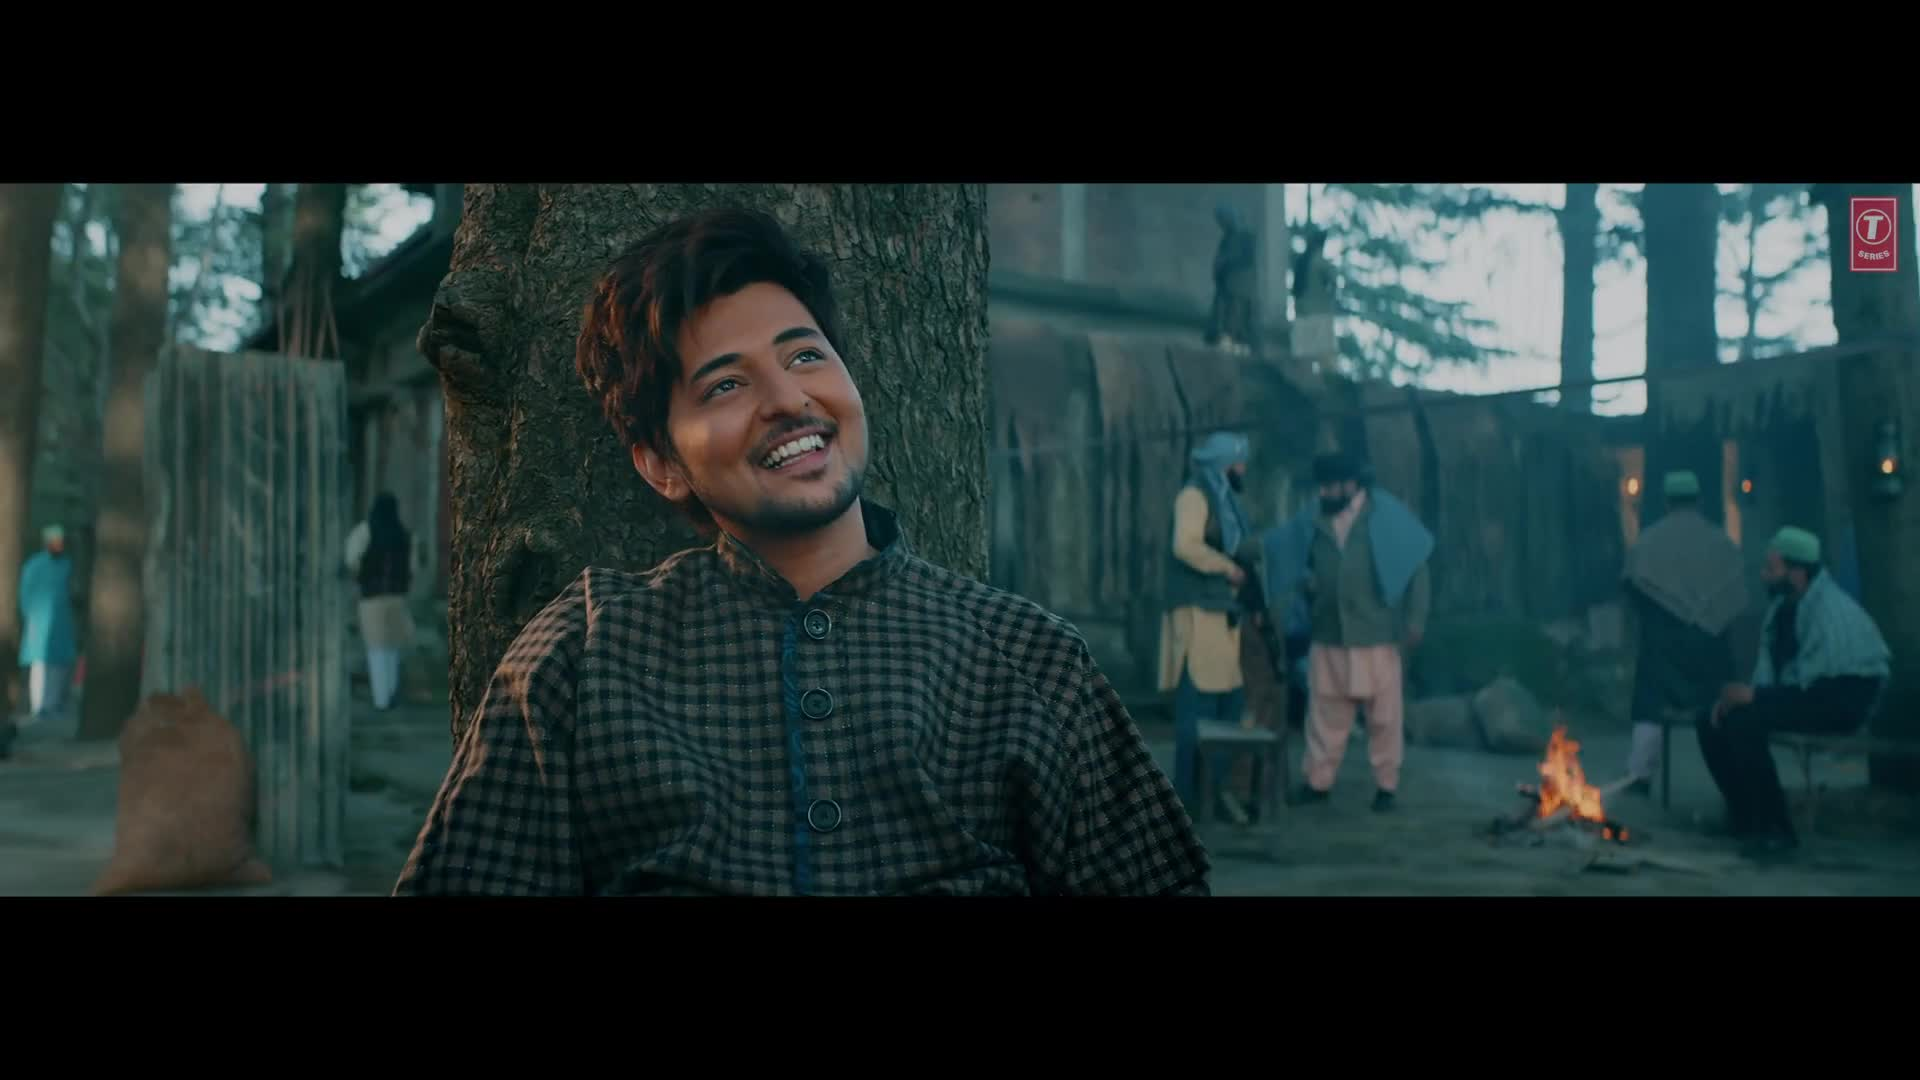 Is Qadar - Tulsi Kumar, Darshan Raval 1080p HD